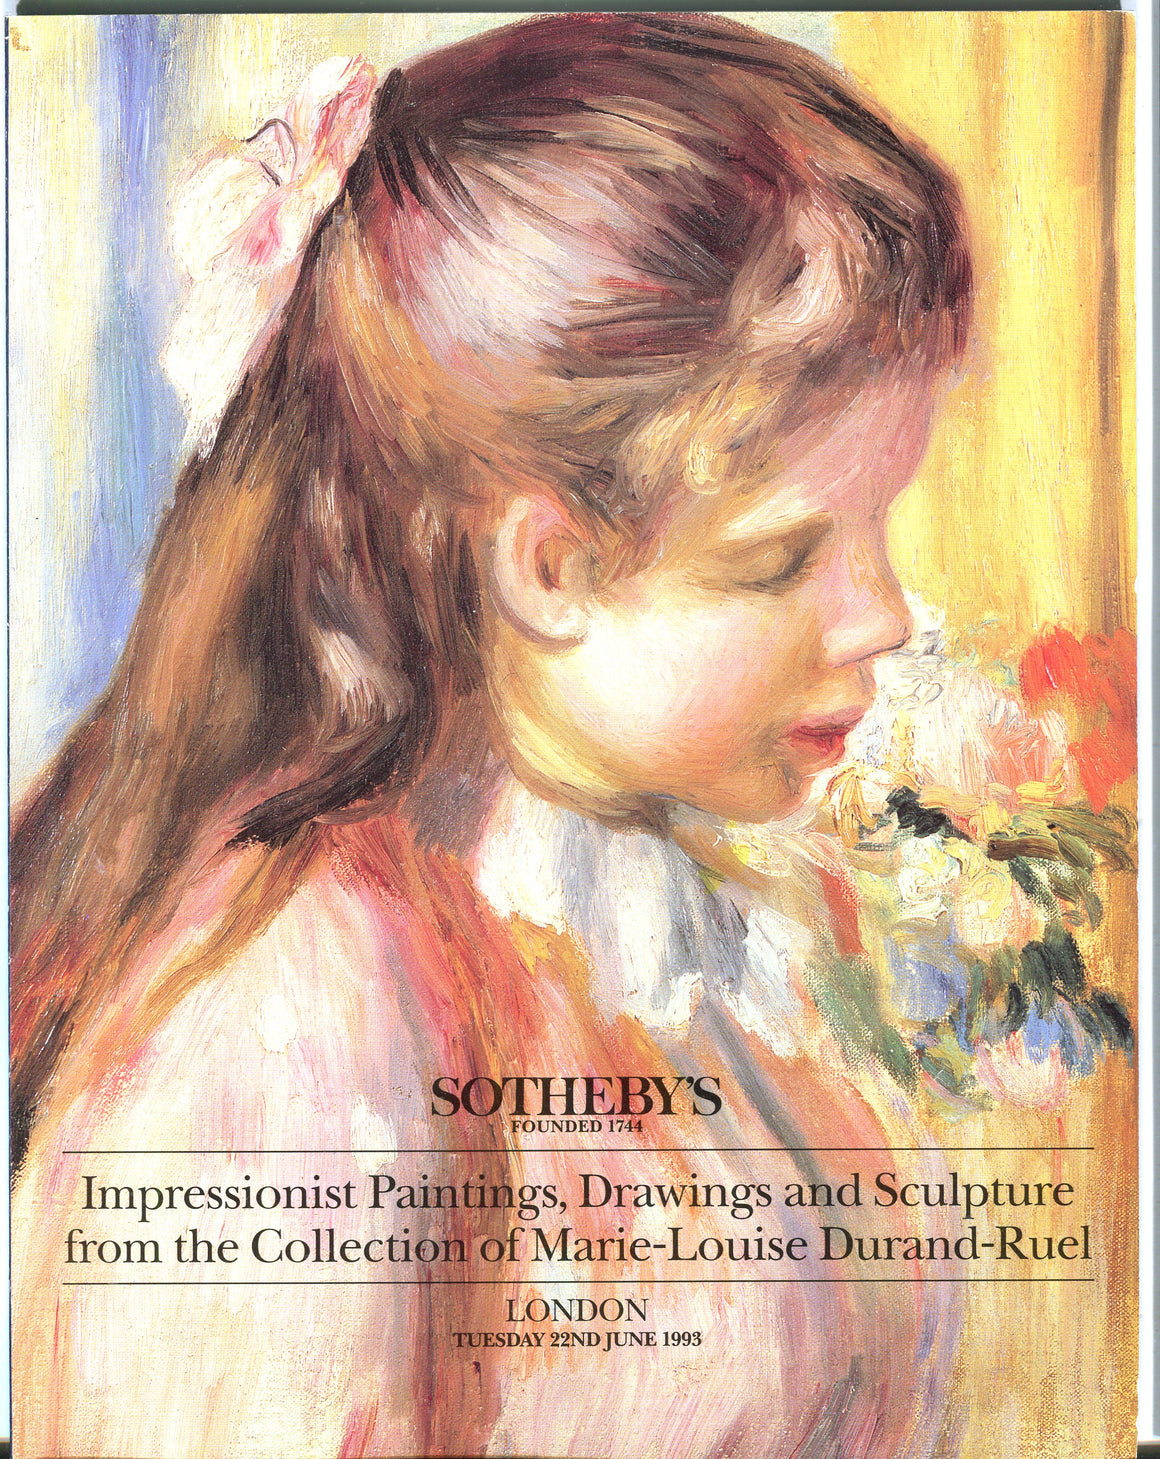 Sothebys Auction Catalog June 1993 Durand-Ruel Collection Impressionist Paintings